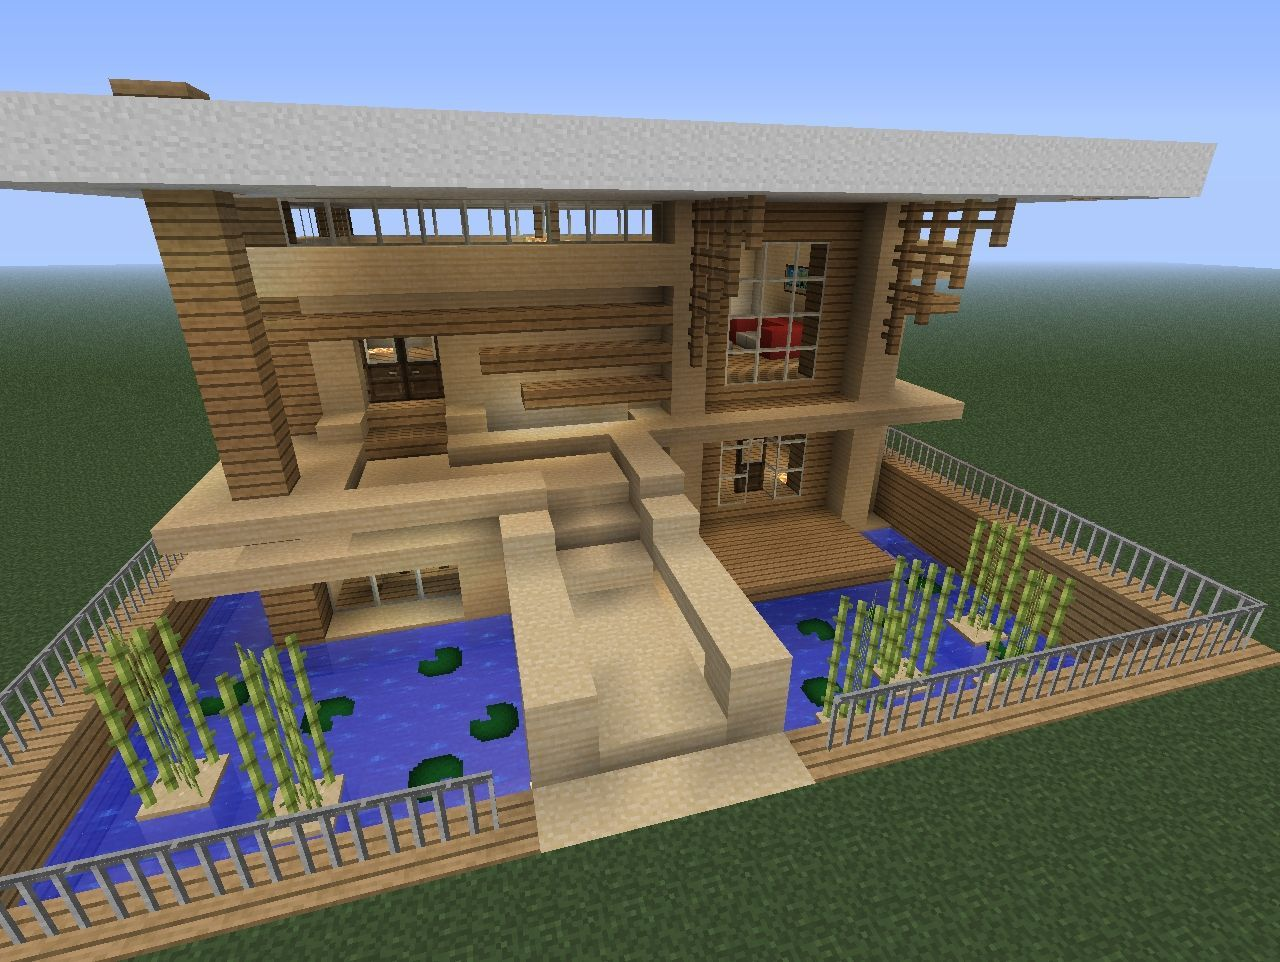 25  unique Minecraft houses ideas on Pinterest   Minecraft  Cool minecraft  houses and Minecraft ideas. 25  unique Minecraft houses ideas on Pinterest   Minecraft  Cool